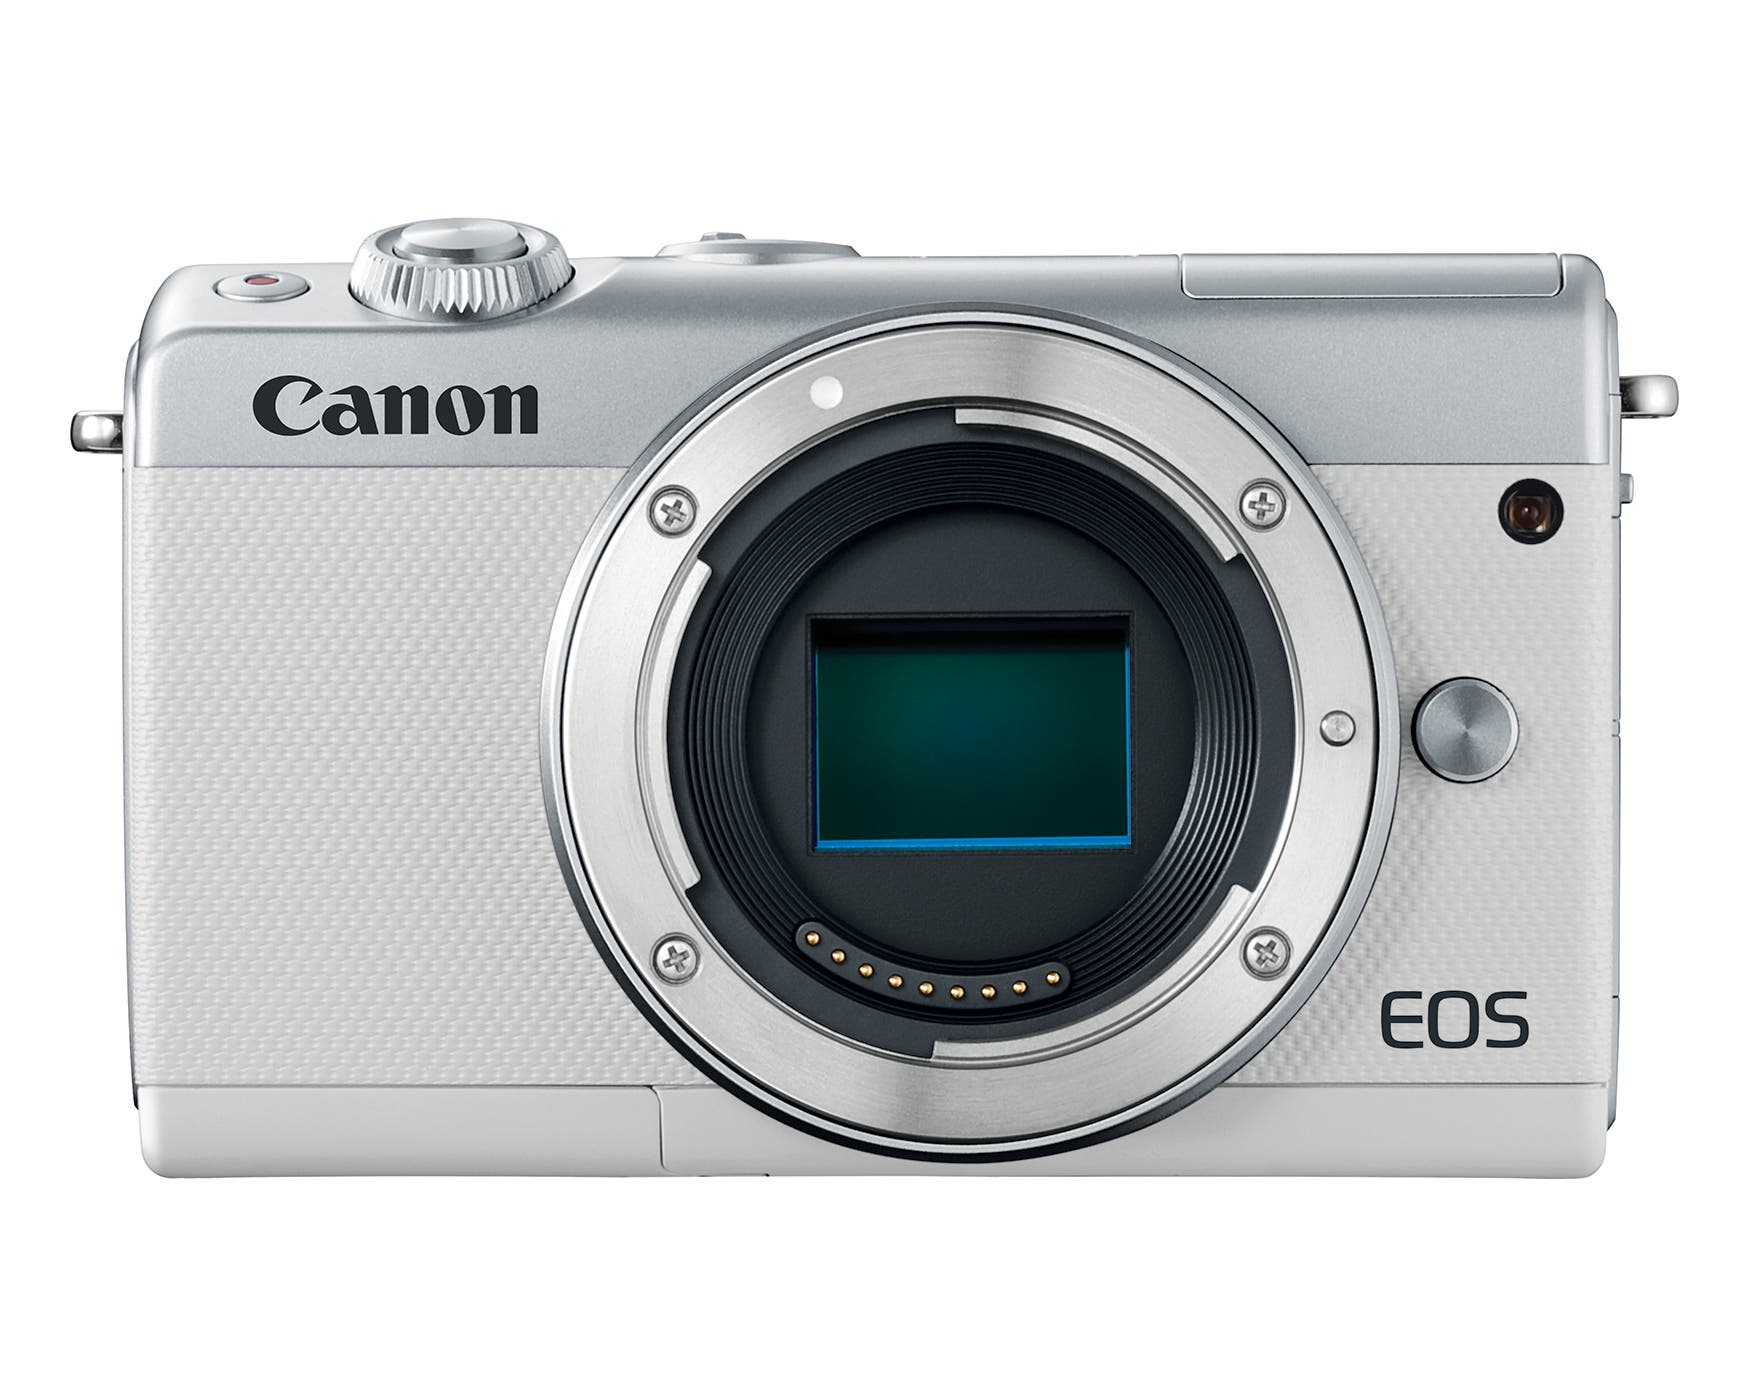 The Canon EOS M100 Is Unfortunately Not the Camera That the Serious Mirrorless Photographer Wants